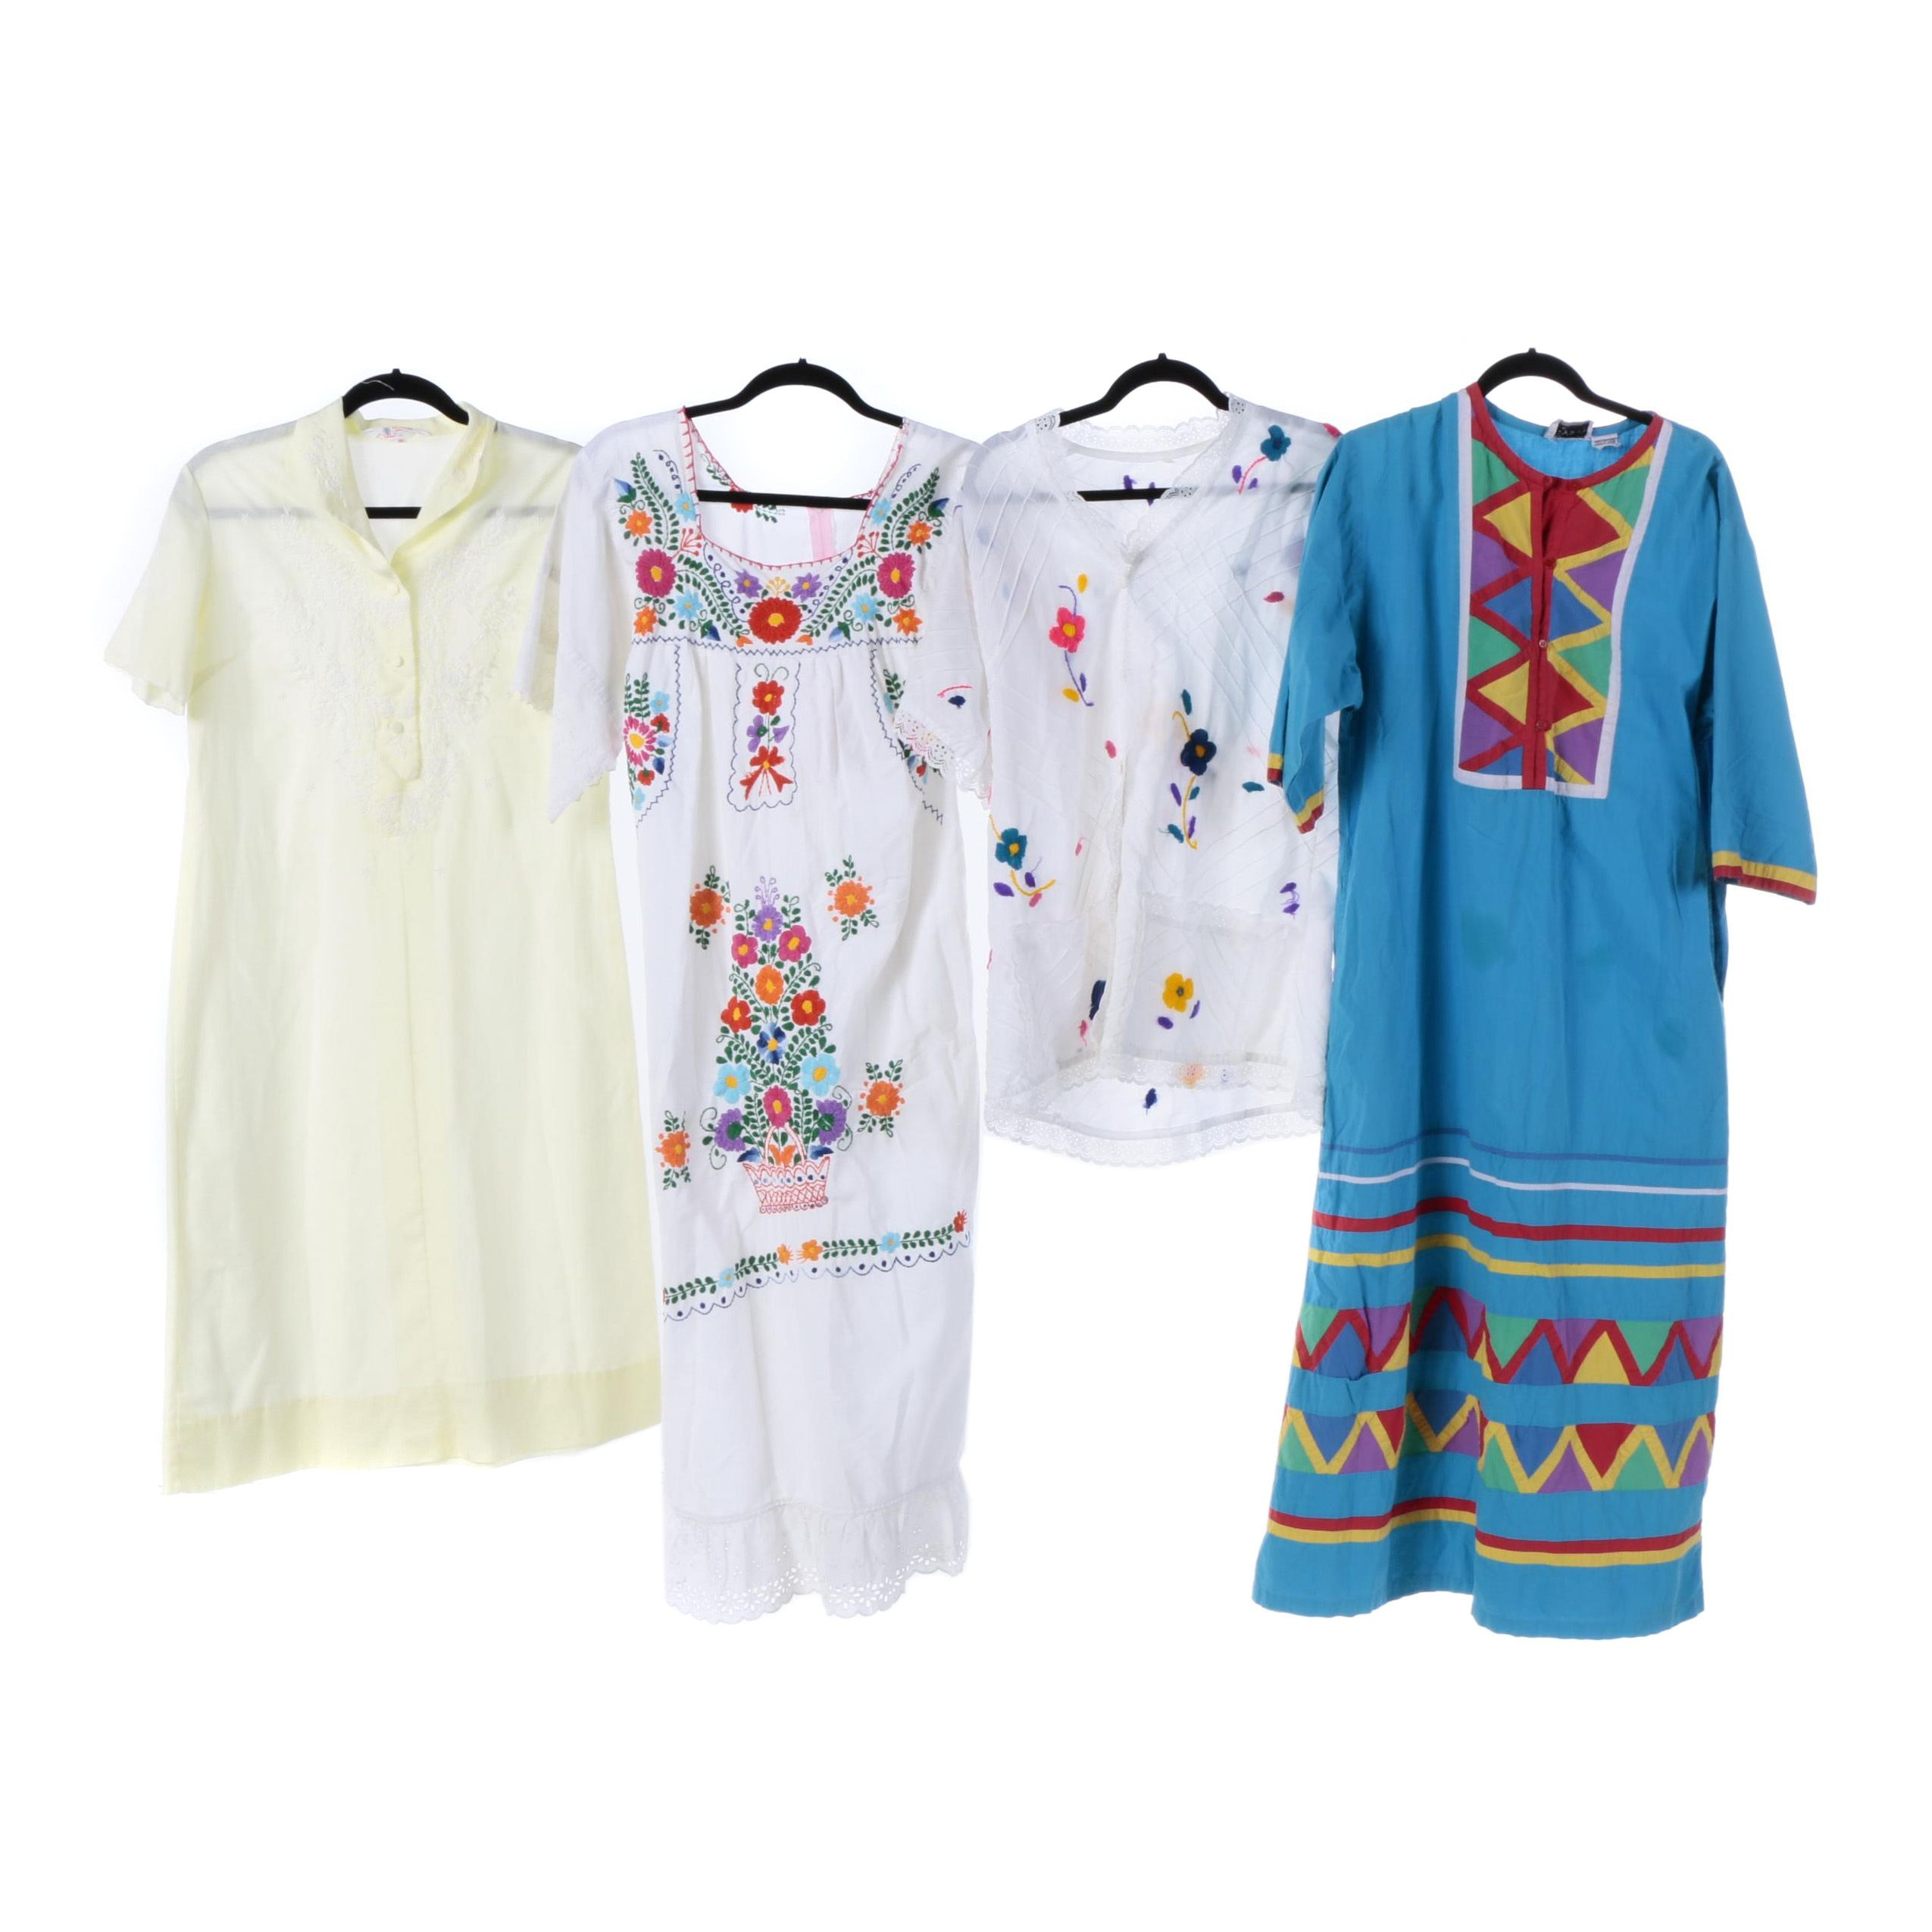 Vintage Mexican, Indian and Cuban Embroidered Cotton Dresses and Top